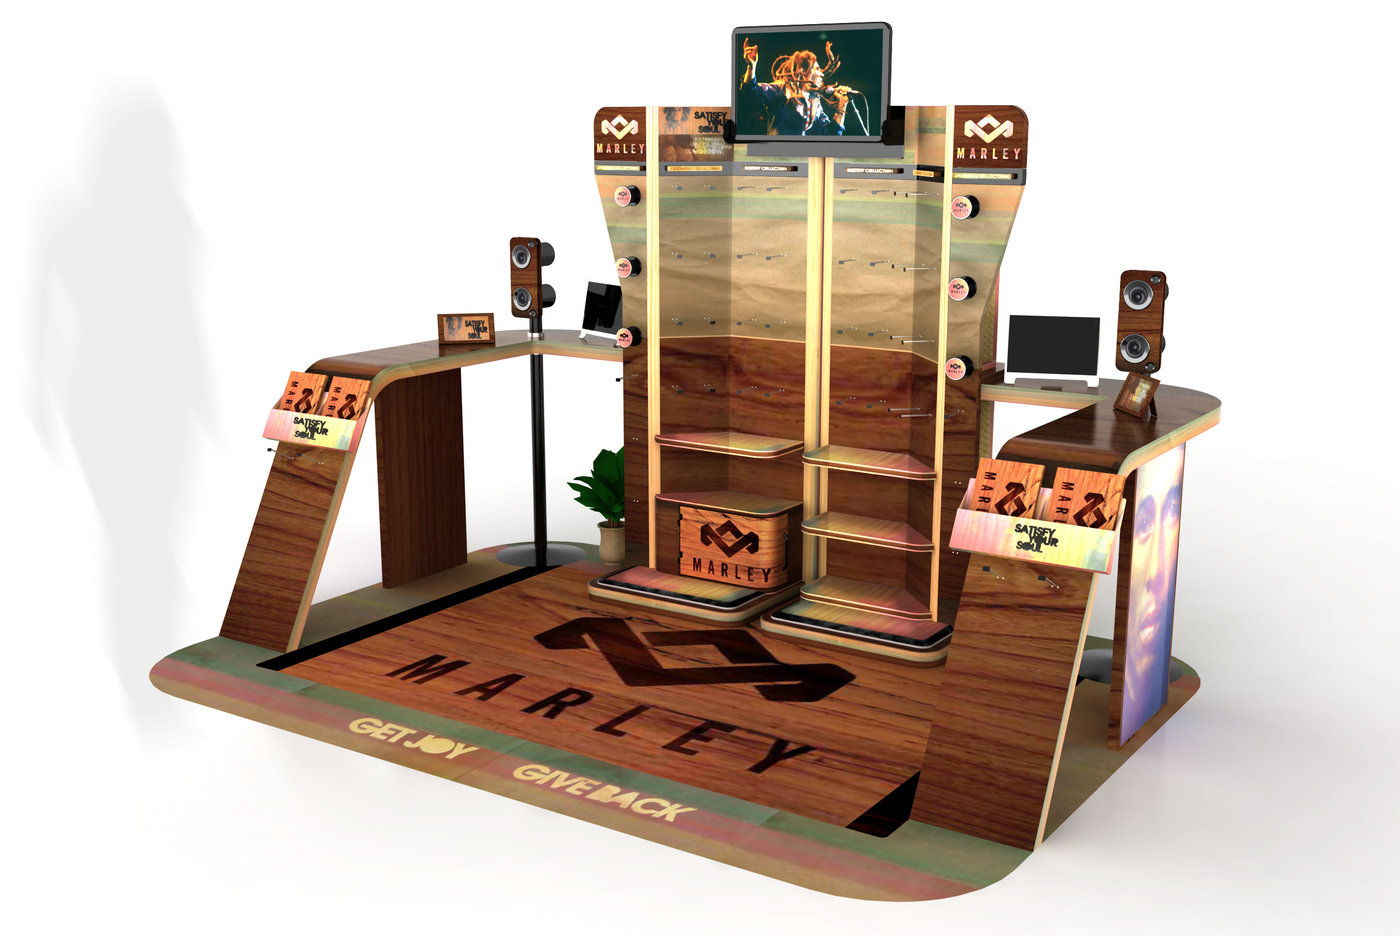 Point Of Sale Display Stands By Germaner Product Design